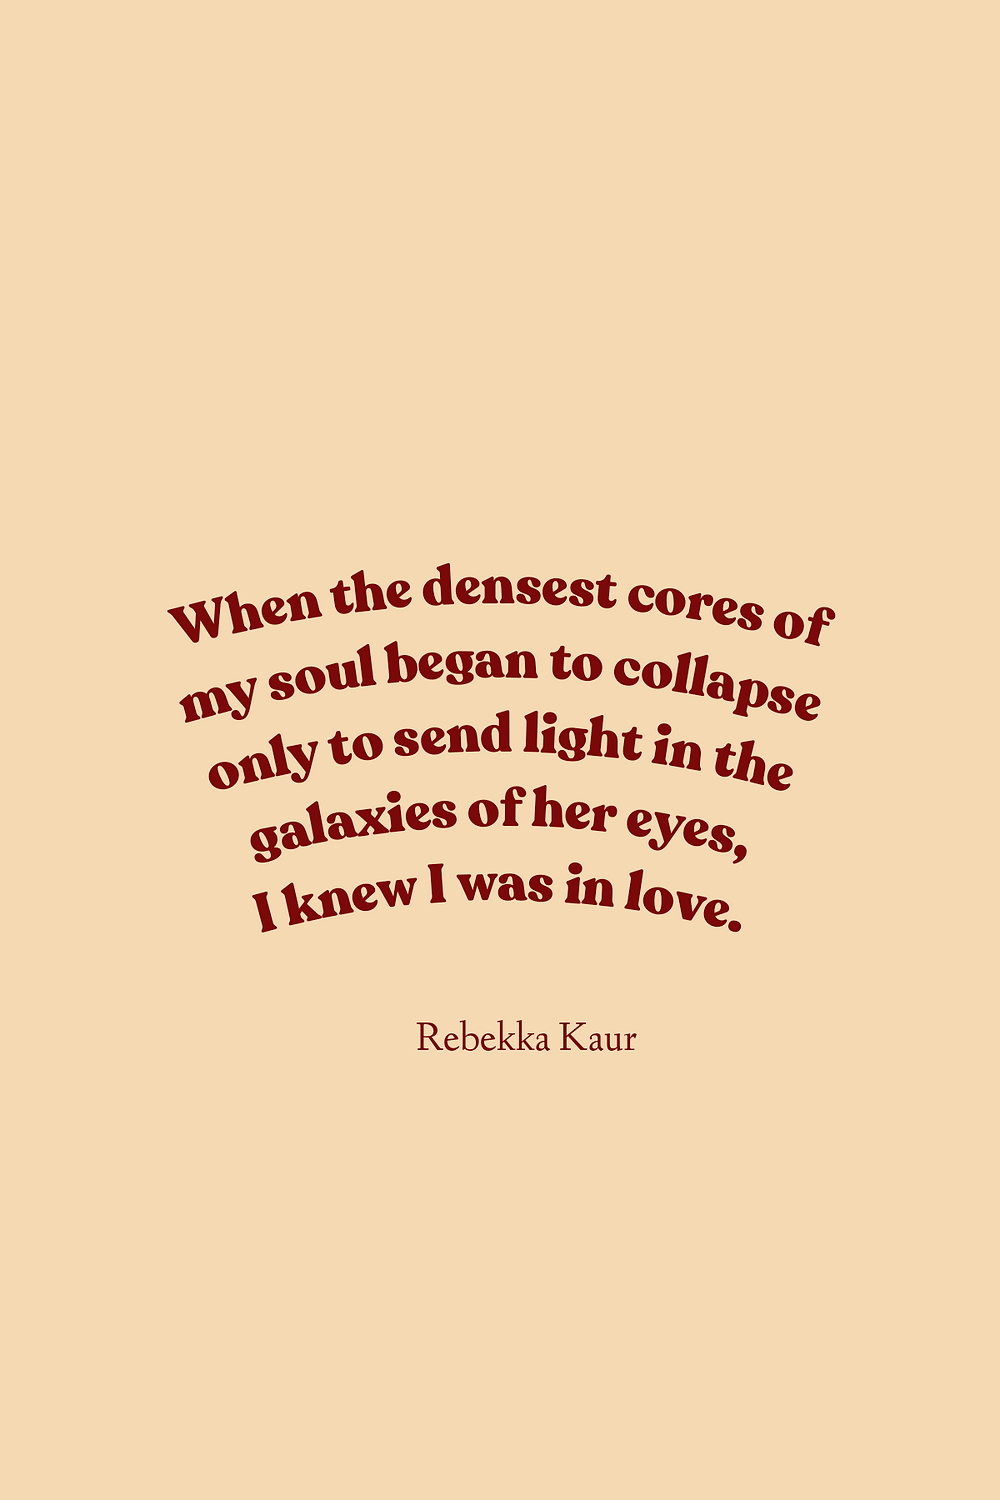 quotes about stars by Rebekka Kaur